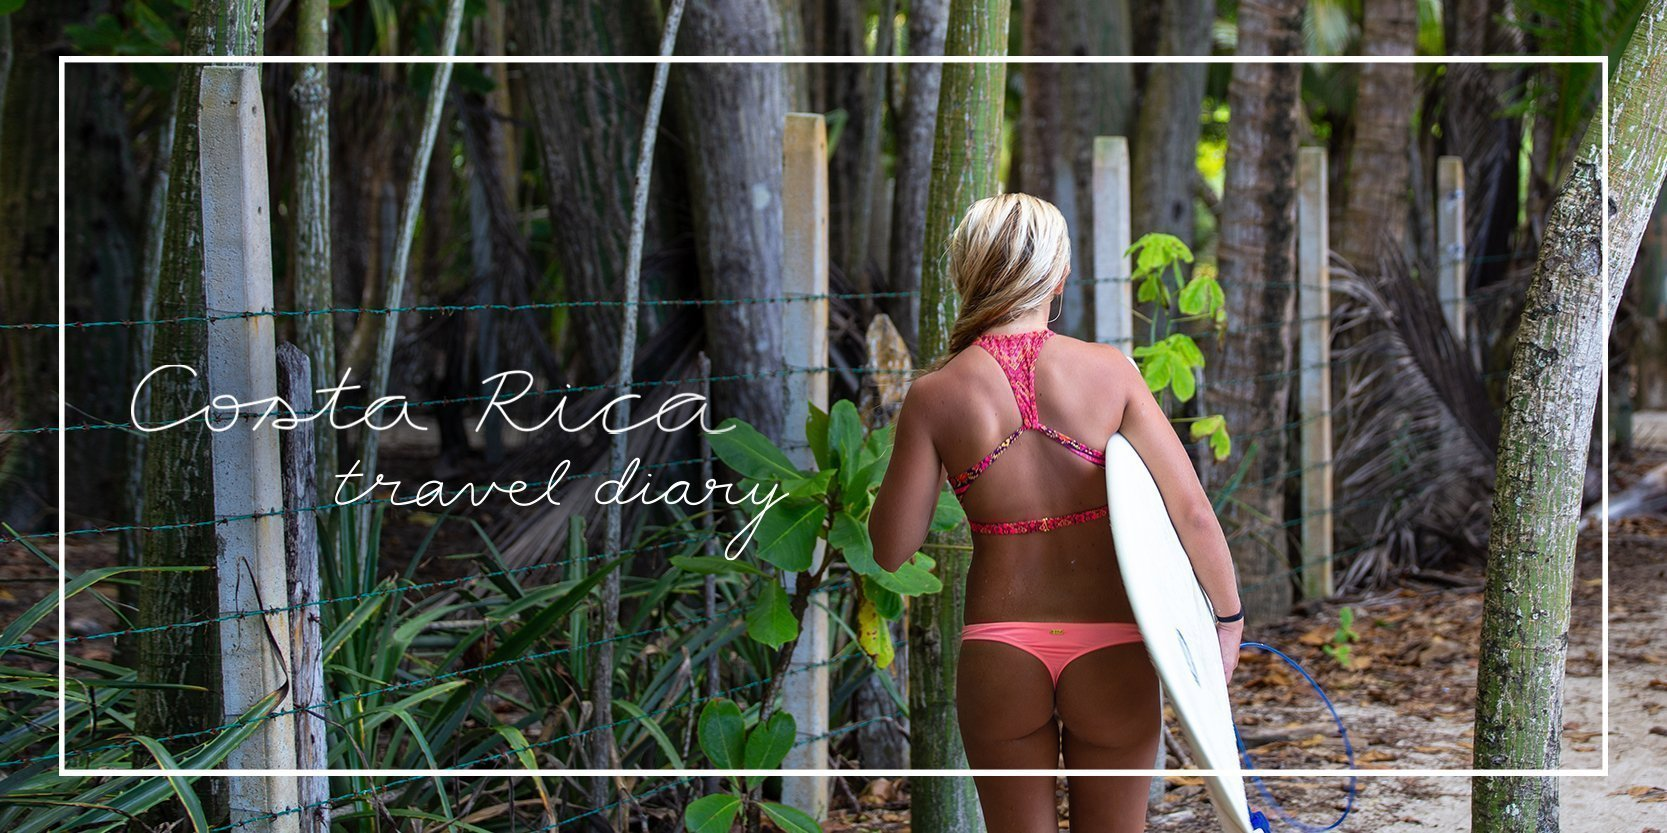 Sunshine, amazing food and surf in Costa Rica